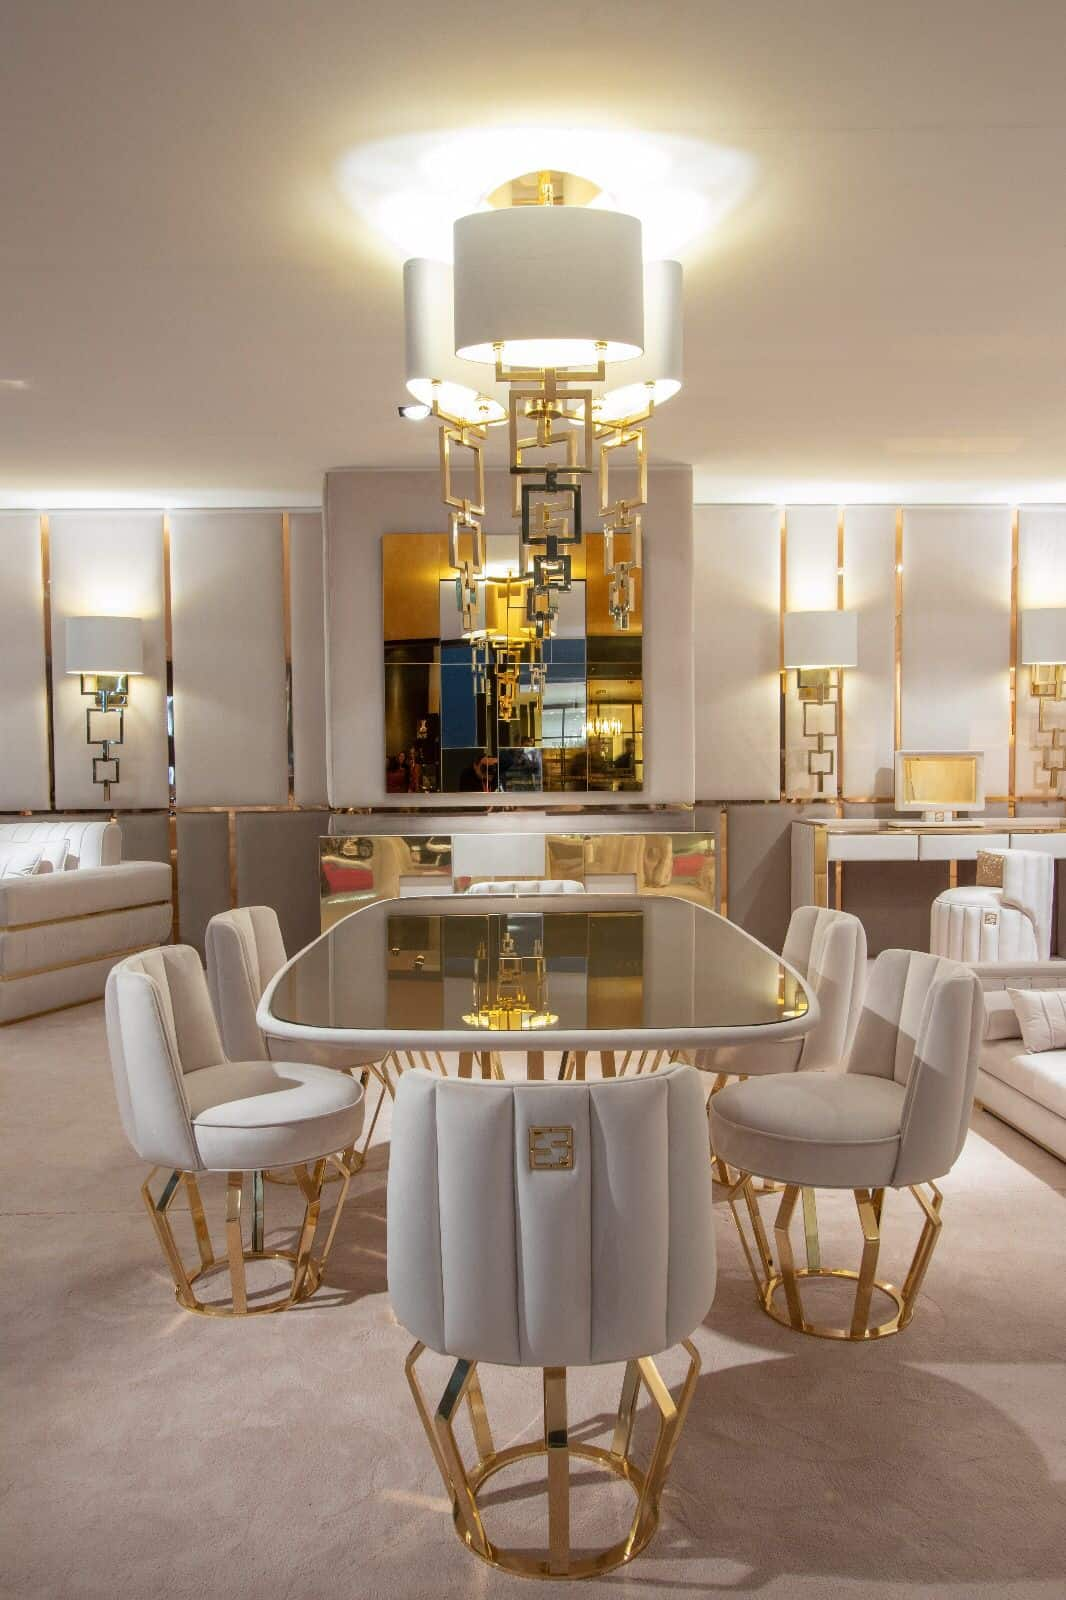 custom chairs in dining room